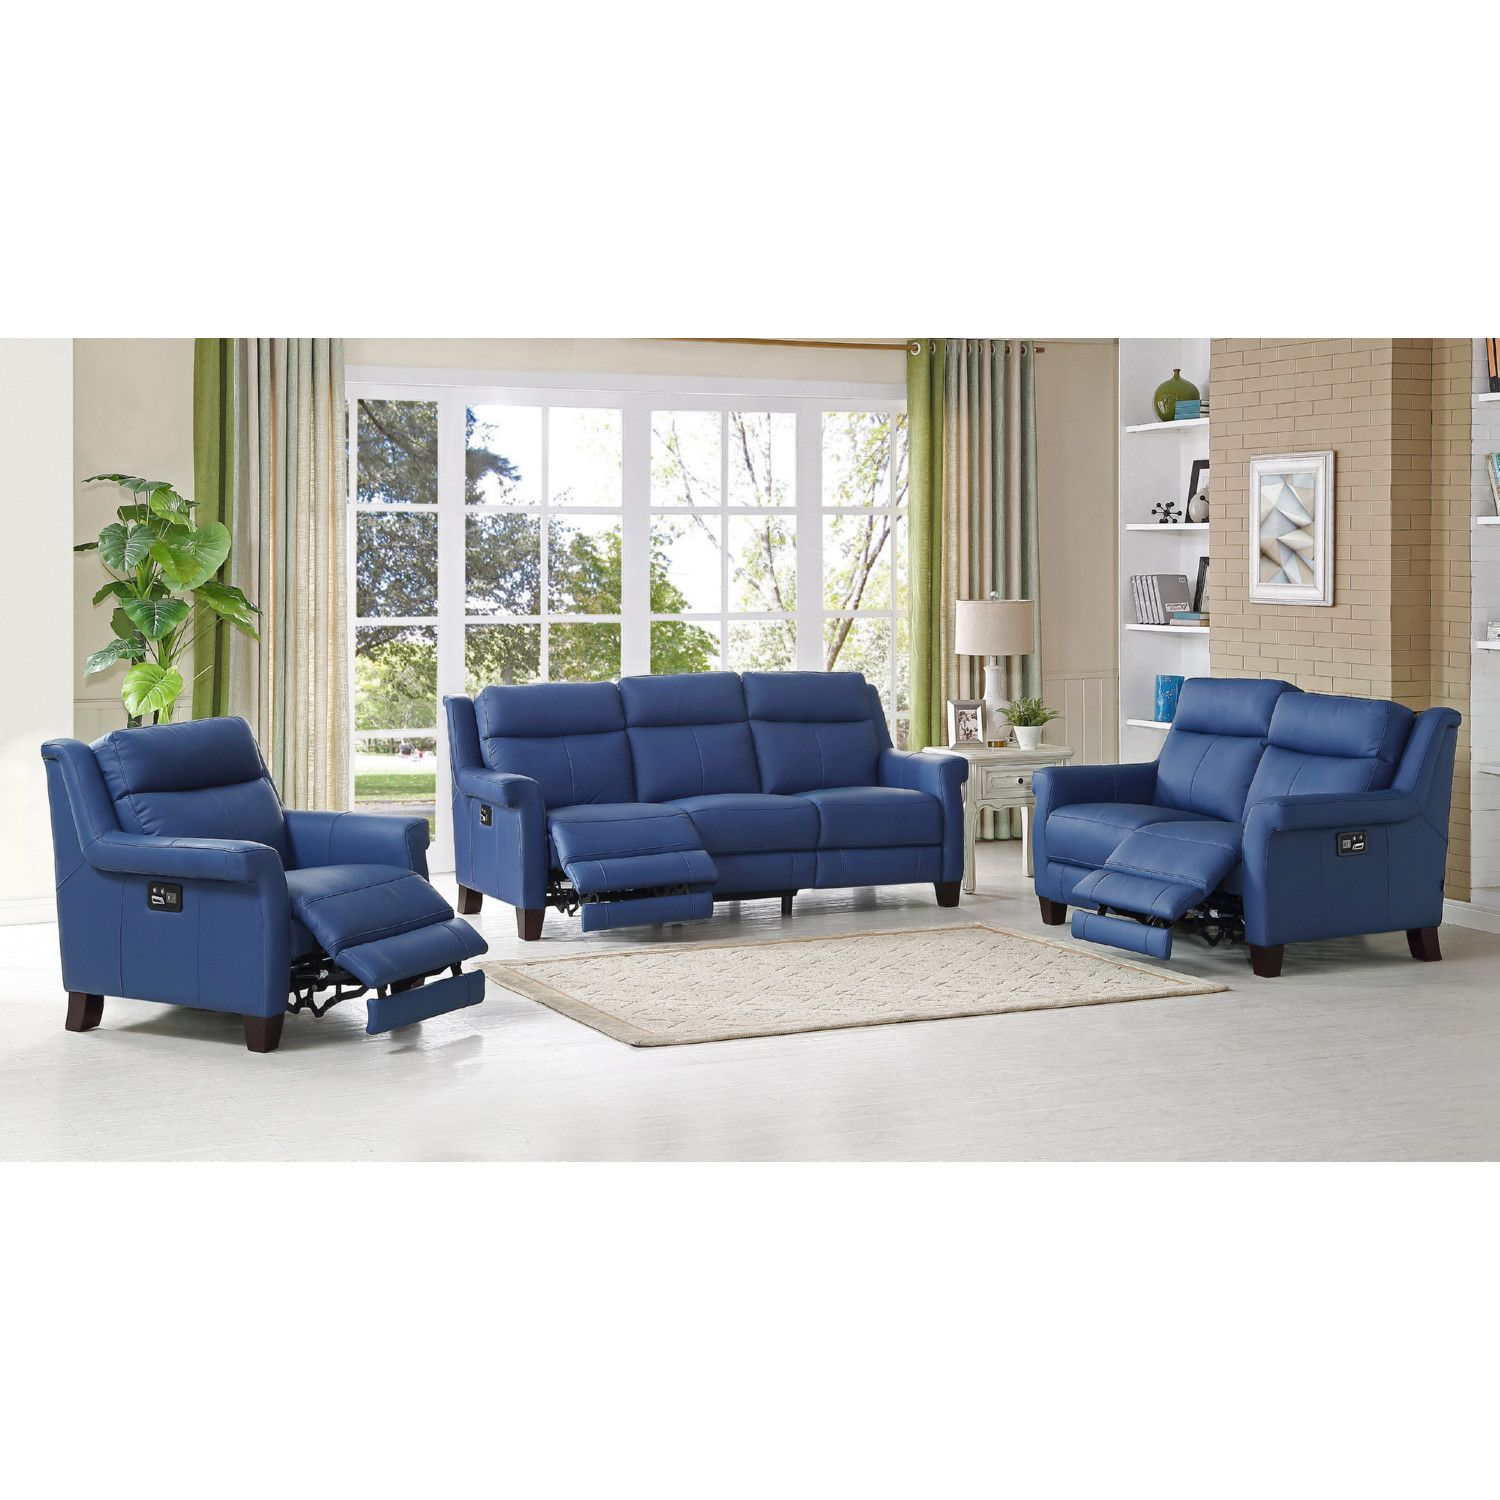 Amax Leather Dolceslc Dolce Power Reclining Sofa Loveseat Recliner Set In Blue Leather Sofa And Loveseat Set Living Room Leather Leather Living Room Set